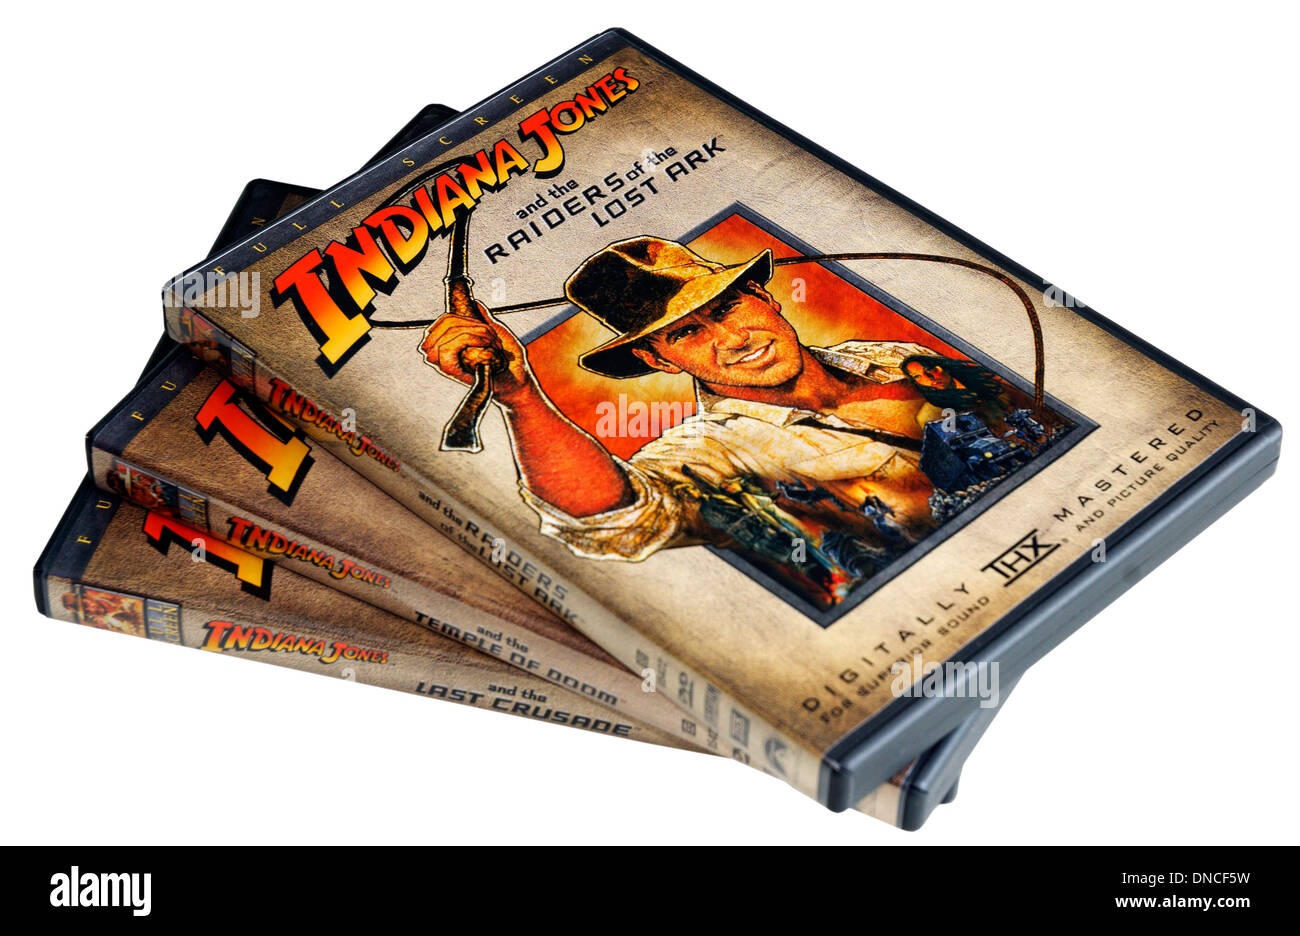 indiana Jones films on DVD - Stock Image